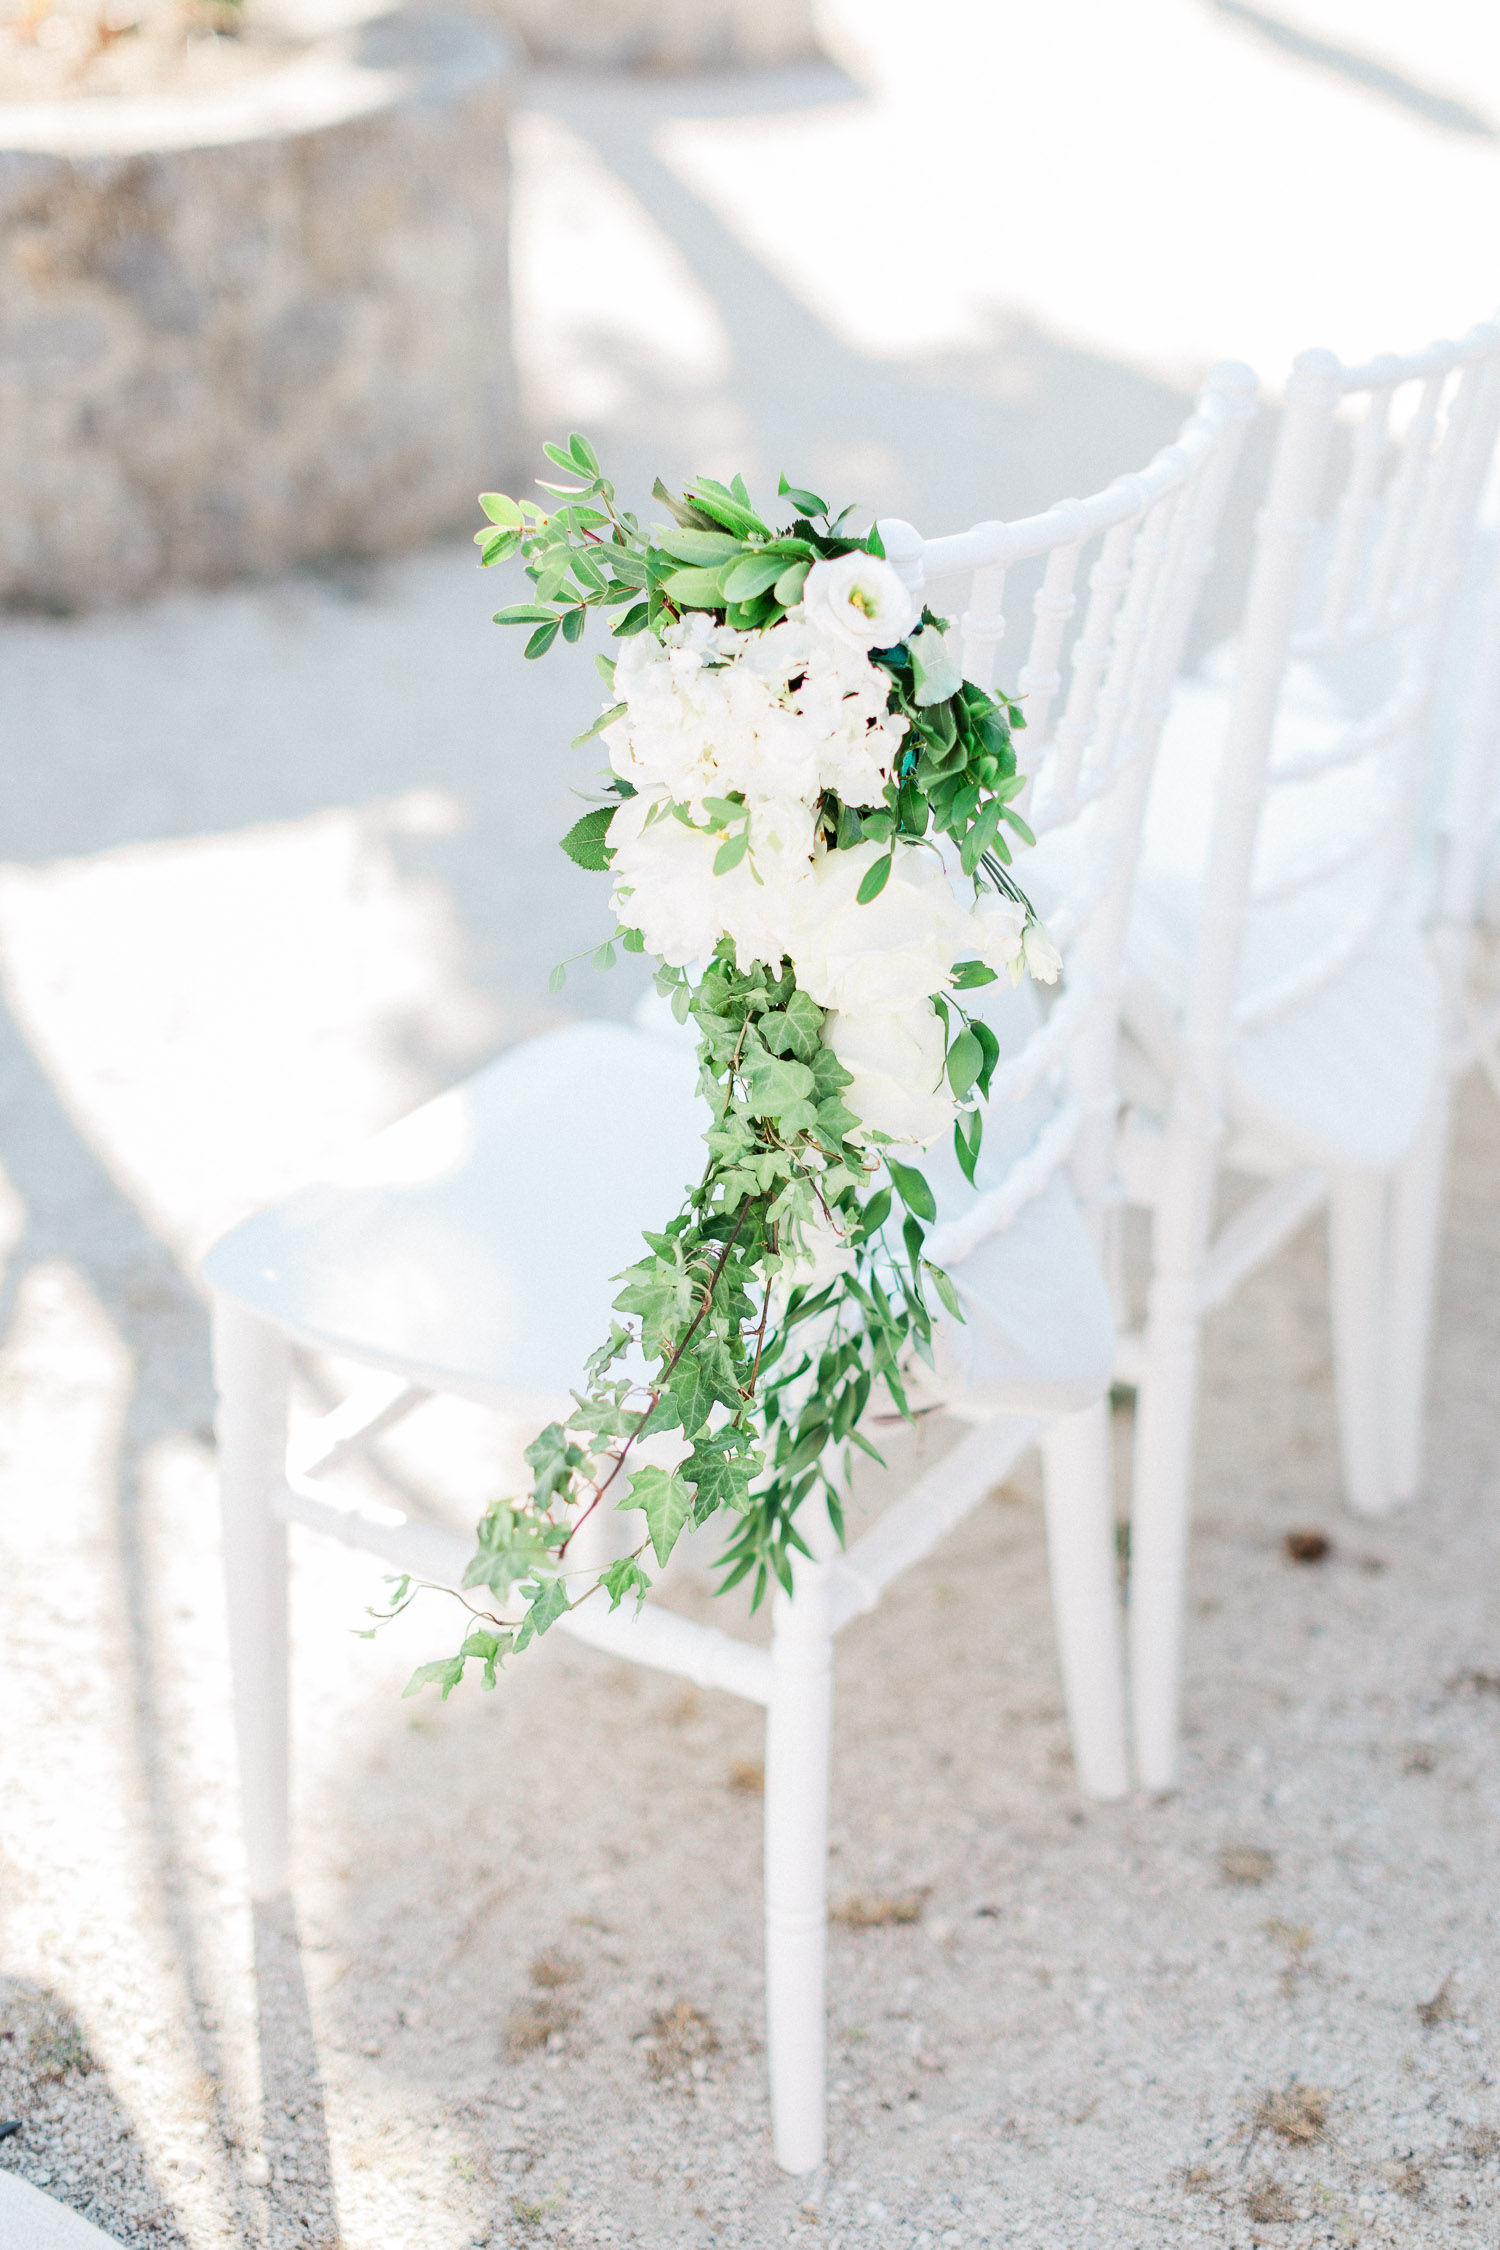 White chairs with white flower arrangements.